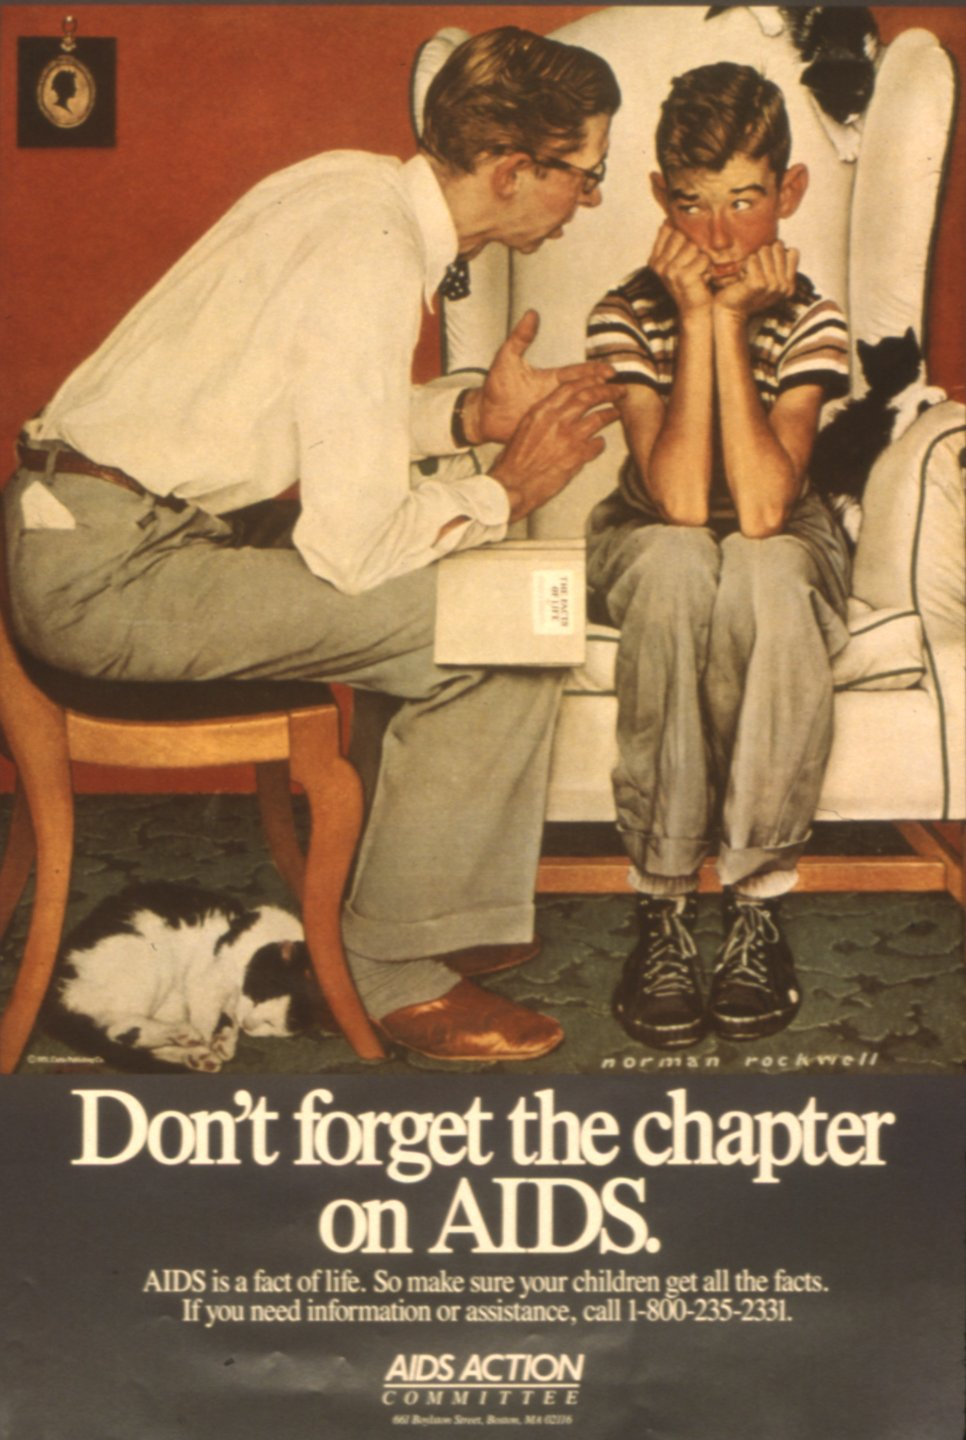 Classic Norman Rockwell painting of an earnest 1950s dad leaning forward talking to his lanky son who has his chin in his hands looking at his dad like this is all very disturbing. A book in Dad's lap subtley says 'Facts of Life.' Below Rockwell's painting in this use of the painting in a 1980s poster, ad copy says 'Don't forget the chapter on AIDS. AIDS is a fact of life. So make sure your children get all the facts. If you need information or assistance, call 1-800-235-2331. AIDS ACTION COMMITTEE